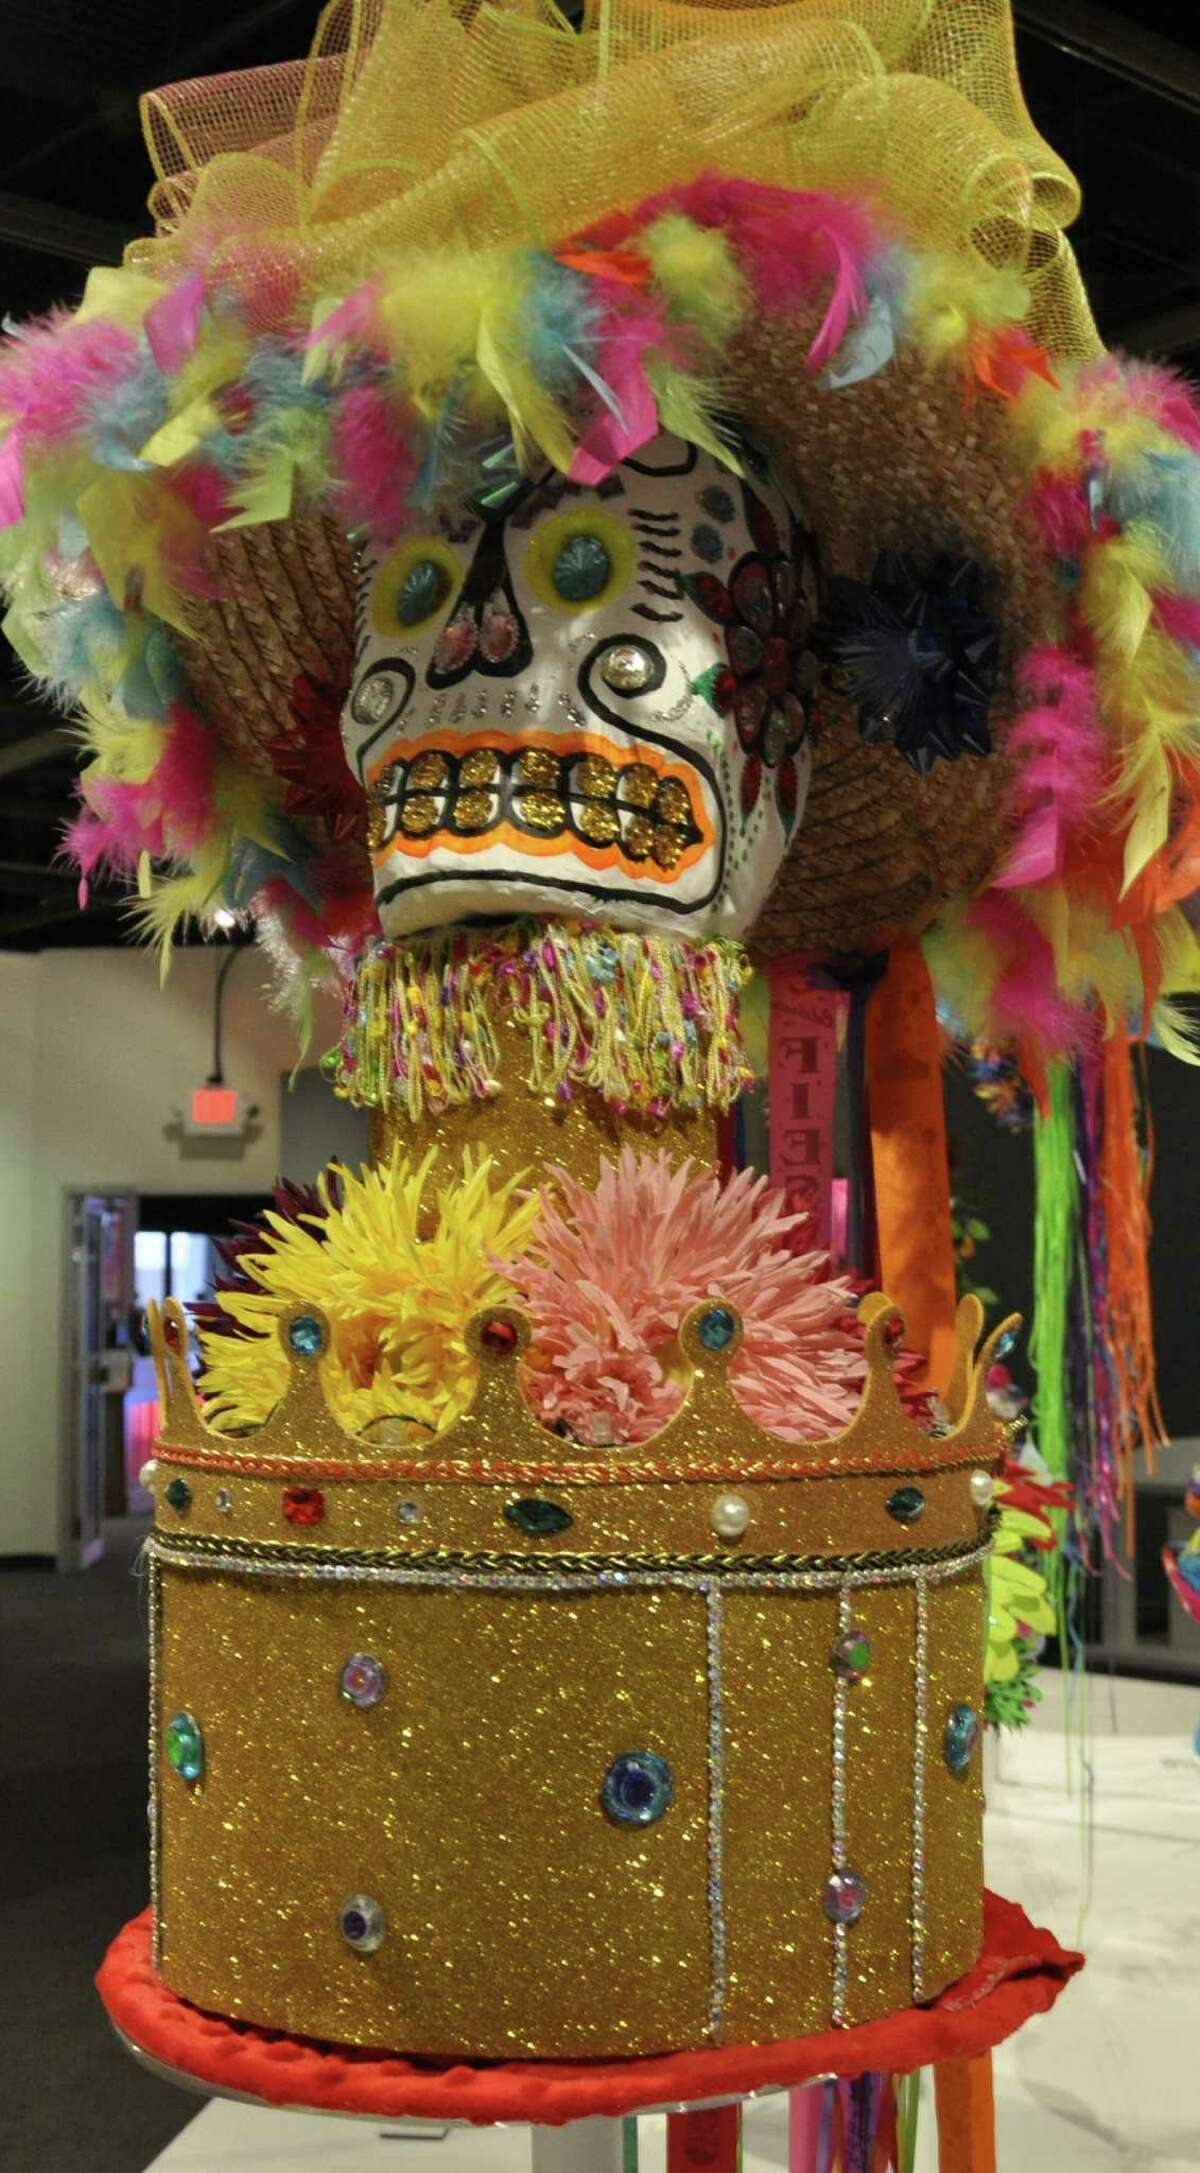 """Mike Taylor created this hat called King hat of Hats that is on display at the Institute of Texan Cultures """"Hats Off to Fiesta"""" first-ever hat exhibit that runs until July 6. he deconstructs his hat from the previous year and makes something new using bits and pieces of the previous hat."""